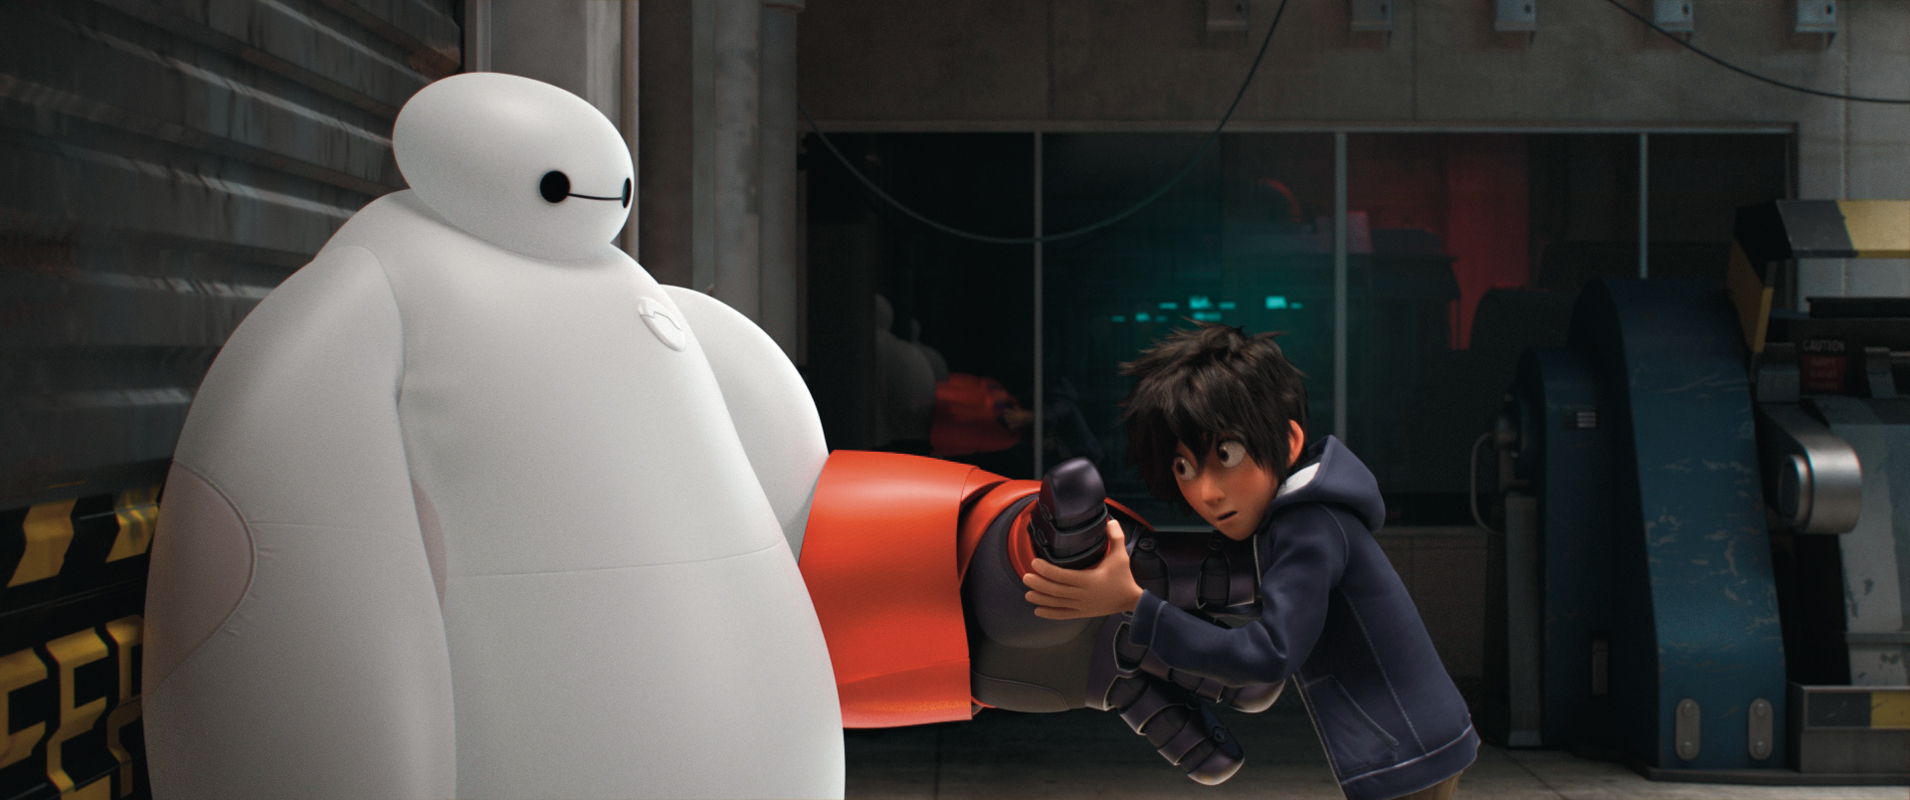 Carnegie Mellon research on soft robotics inspired Disney's Baymax, a robot hero in the movie Big Hero 6, which was released last Friday.  (credit: DisneyLifestylers via Flickr)